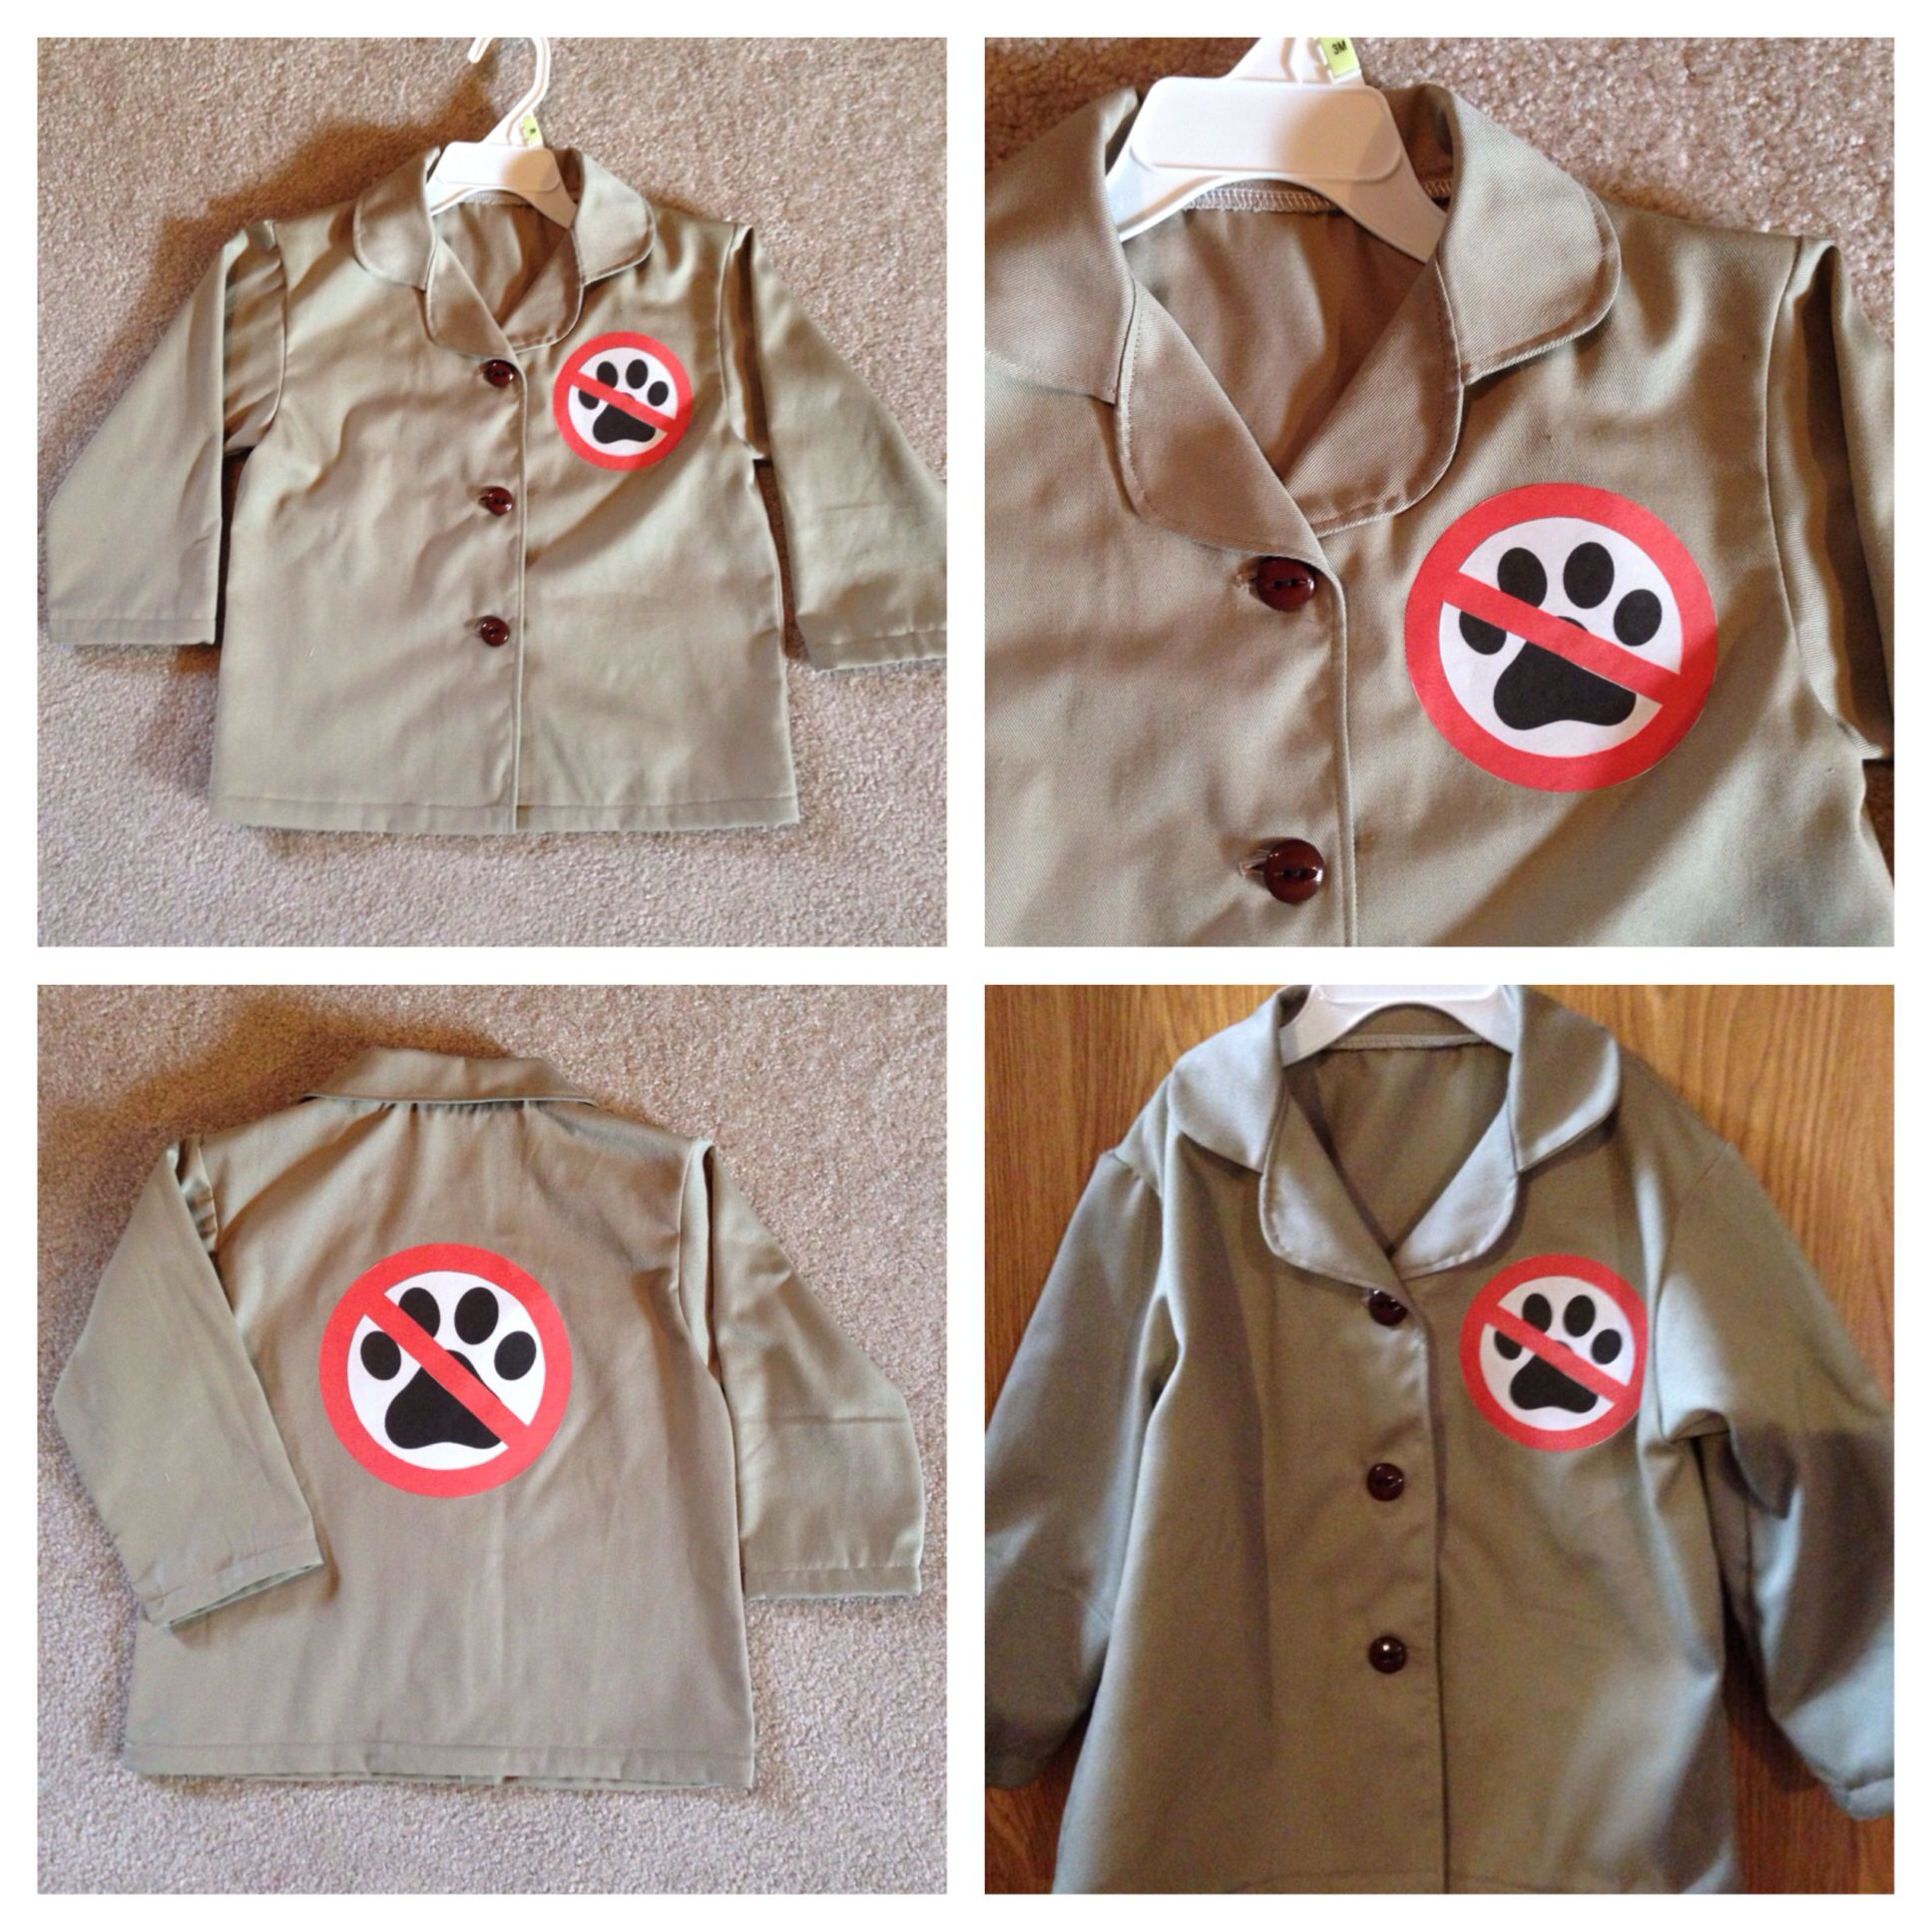 dog catcher costume for a 3-year-old little boy. his baby brother is